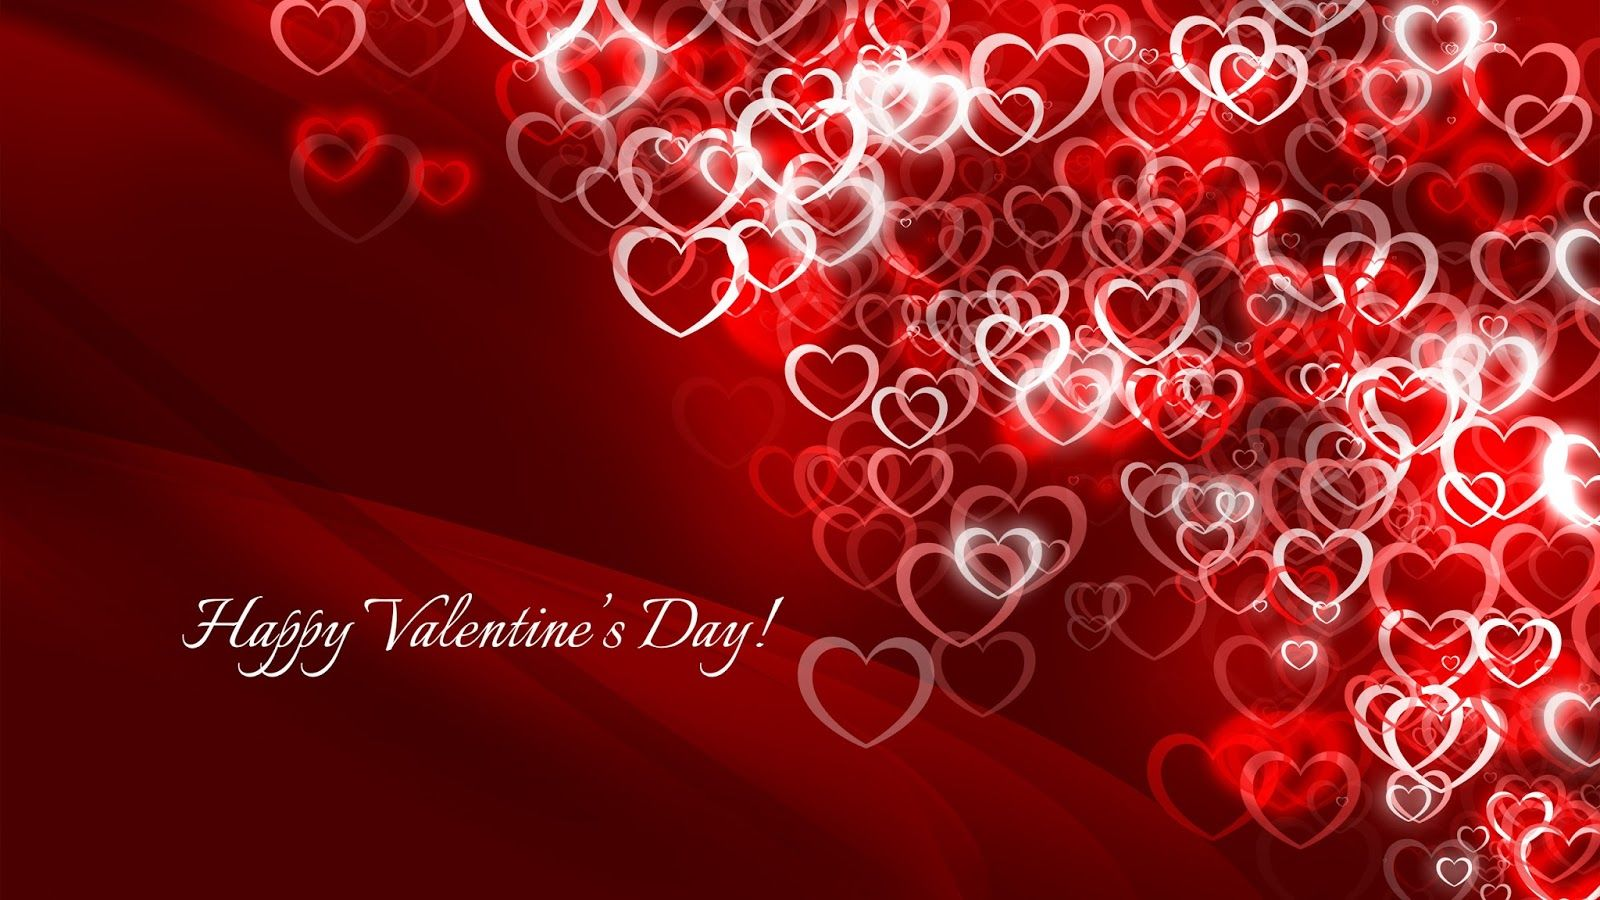 Happy valentines day 2017 images wishes messages whatsapp status happy valentines day 2017 images wishes messages whatsapp status today i am provide you latest collection of happy valentines day image m4hsunfo